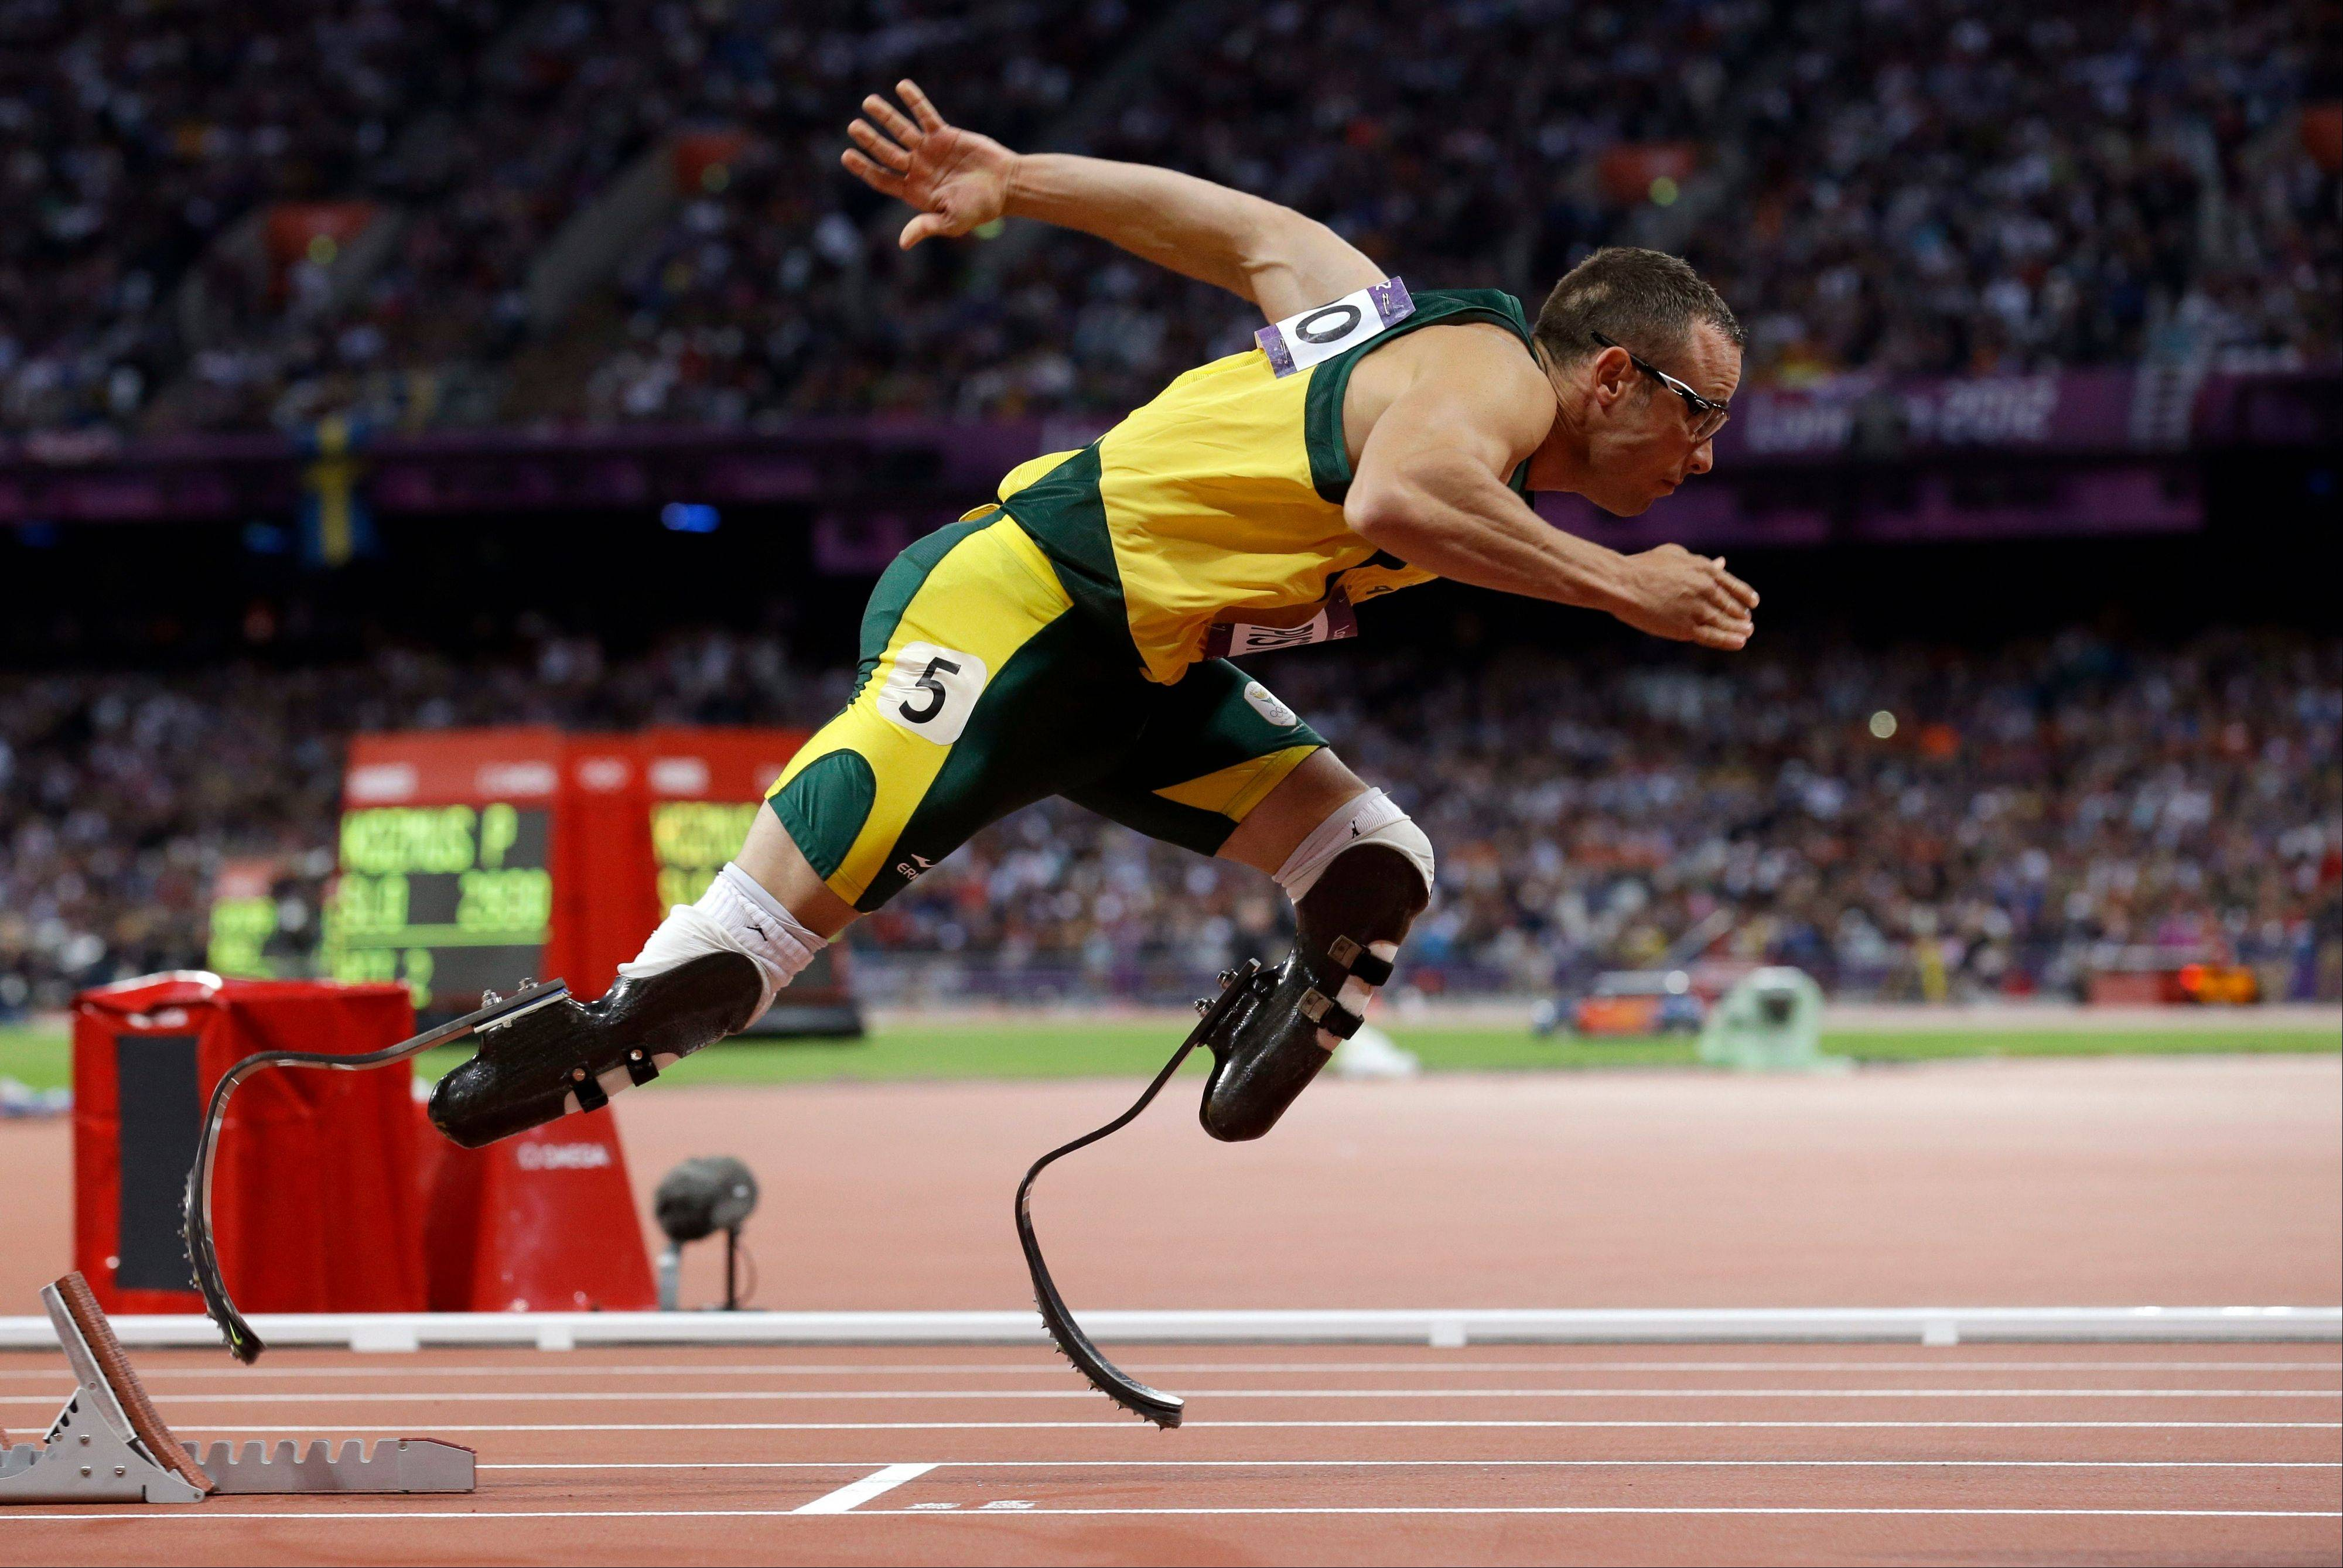 Nike Inc. has suspended its contract with Oscar Pistorius, the double-amputee runner from South Africa charged with premeditated murder in the Valentine's Day slaying of his girlfriend.